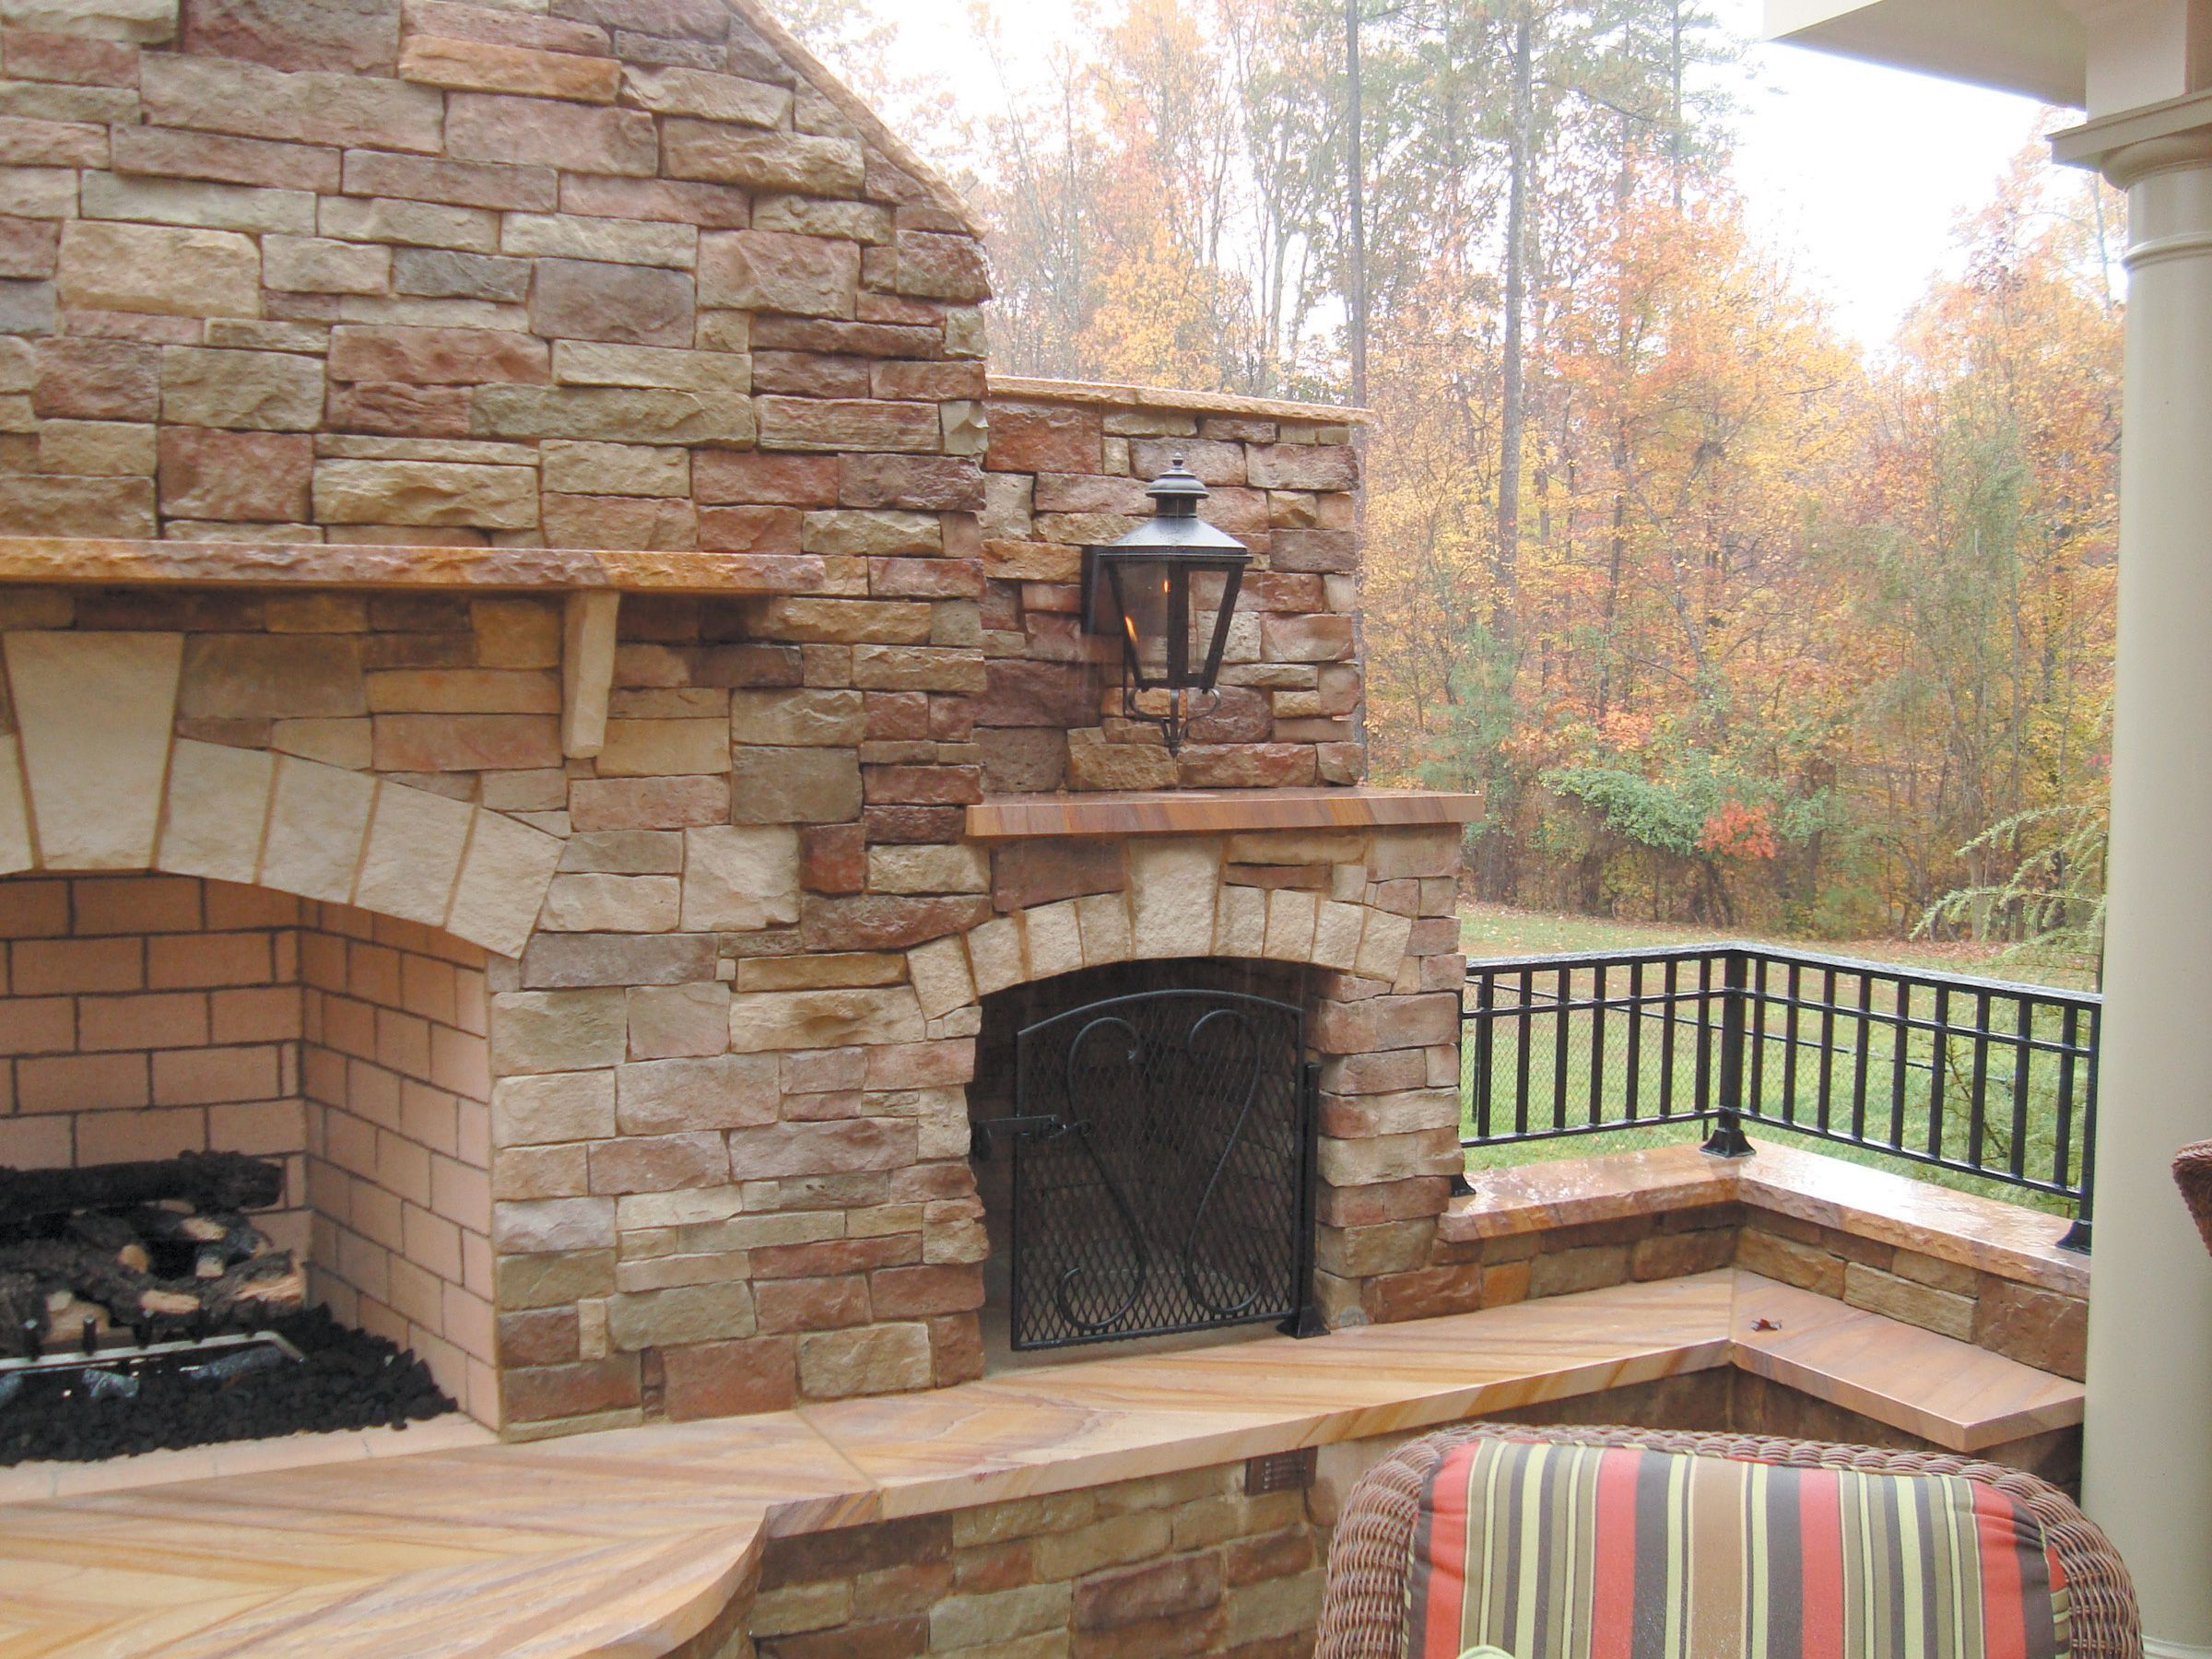 interior stone fireplace specializes in faux stone veneer and natural stone design description from maz - Faux Stone Veneer